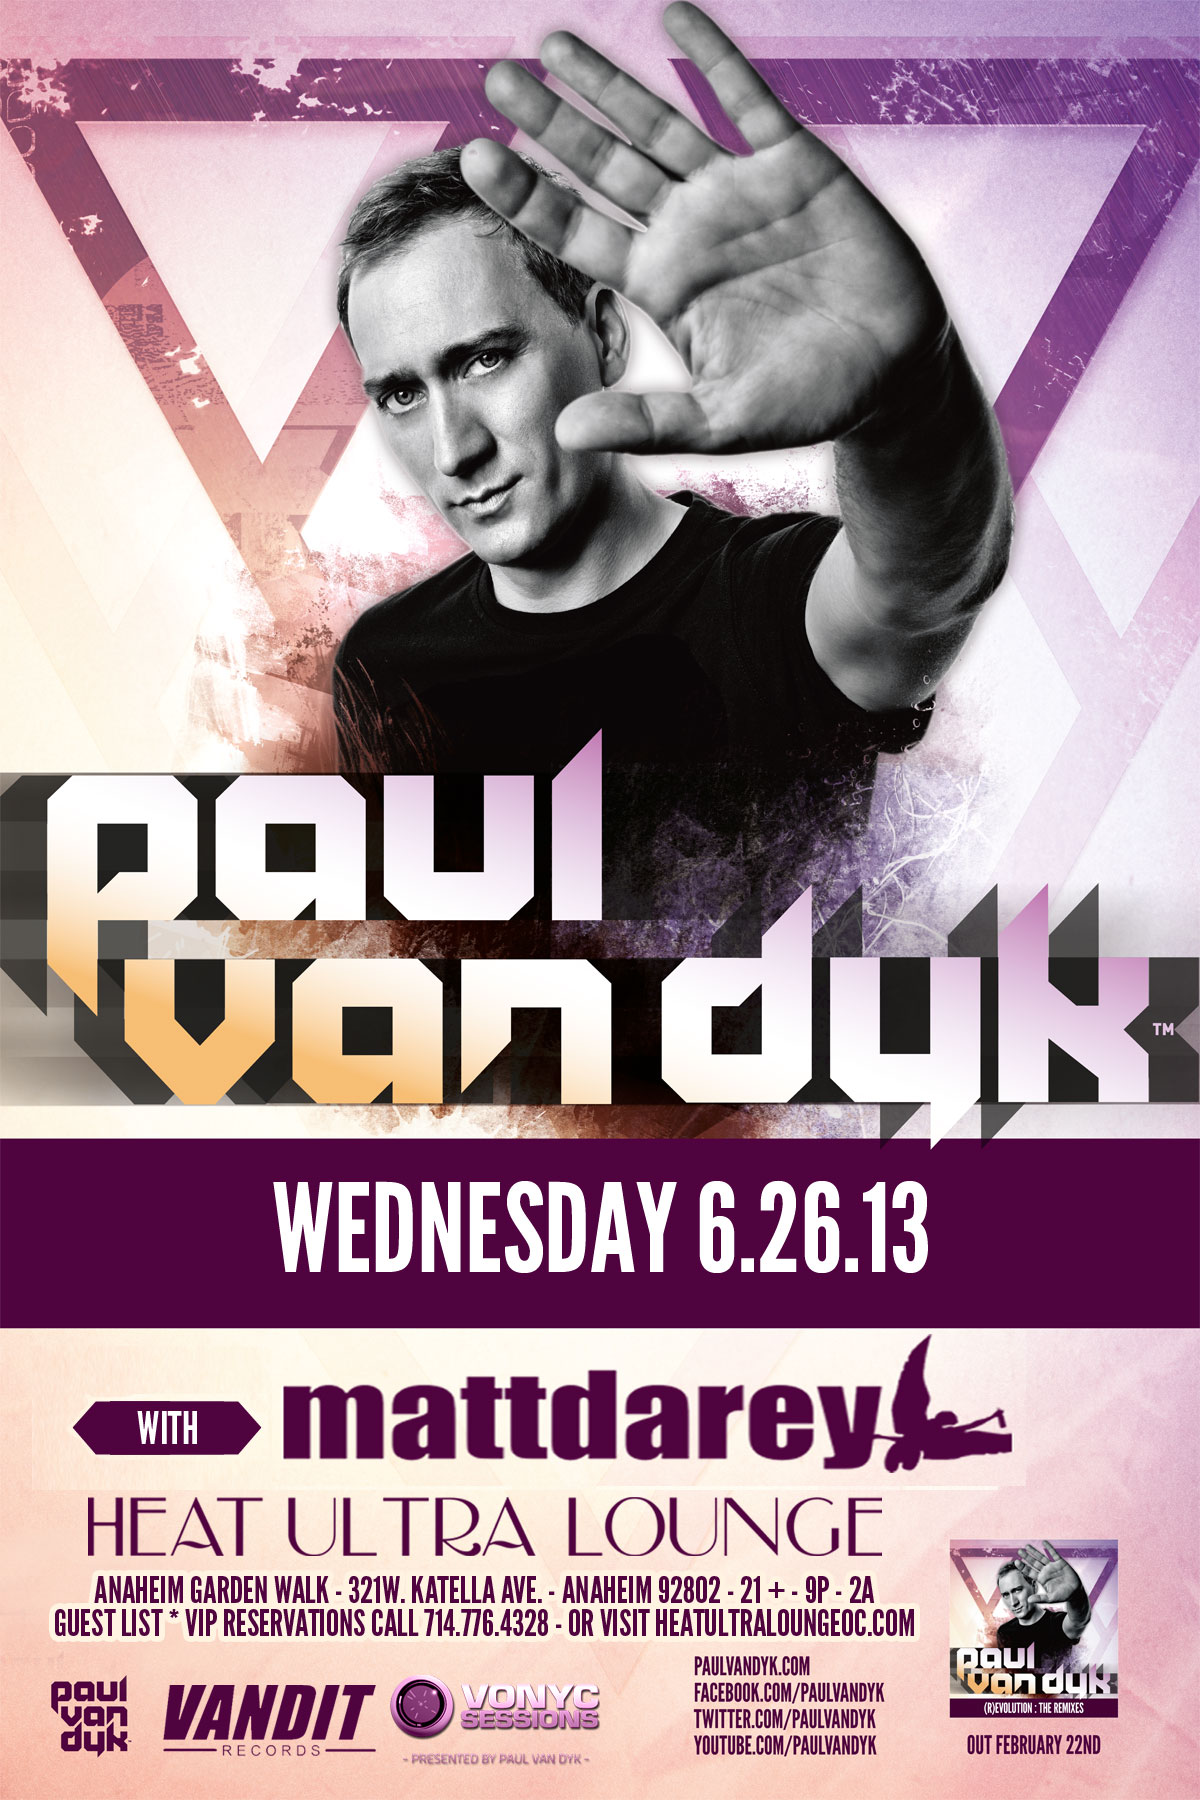 Paul van Dyk at Heat Ultra Lounge June 26th, 2013 Tickets